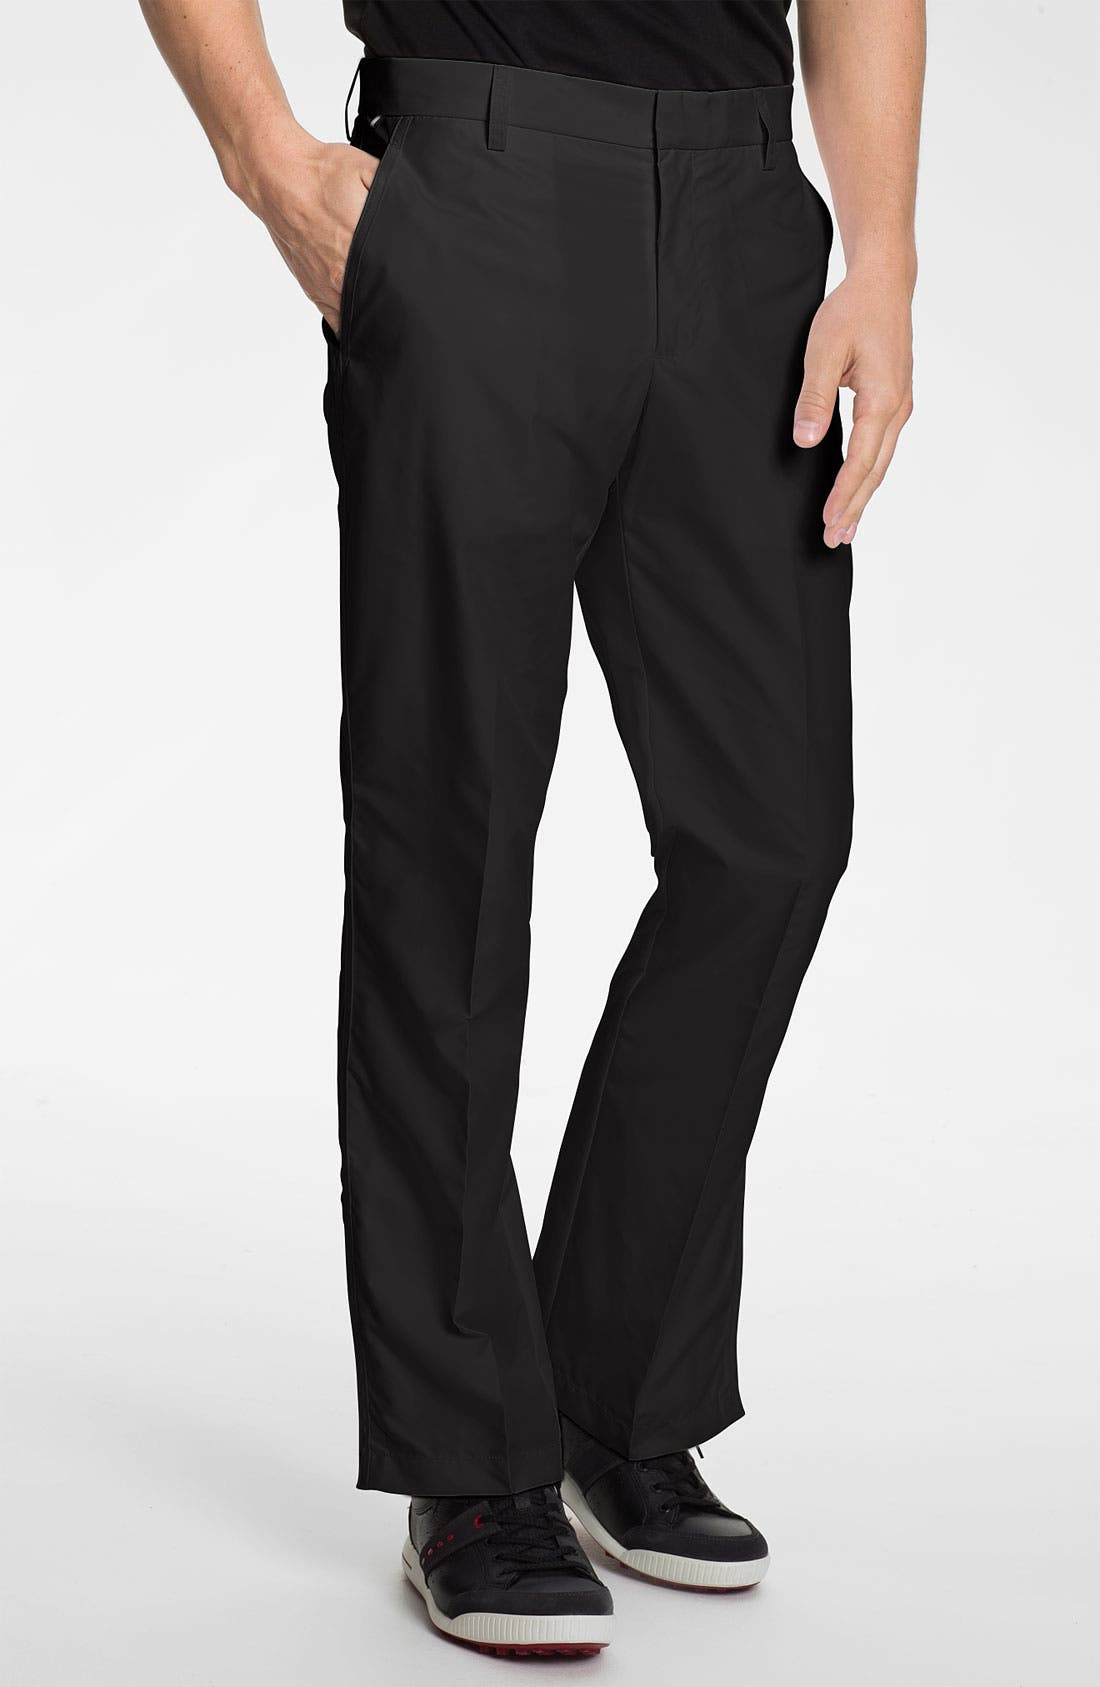 Alternate Image 1 Selected - J. Lindeberg Golf 'Troyan' Micro Twill Golf Pants (Online Only)